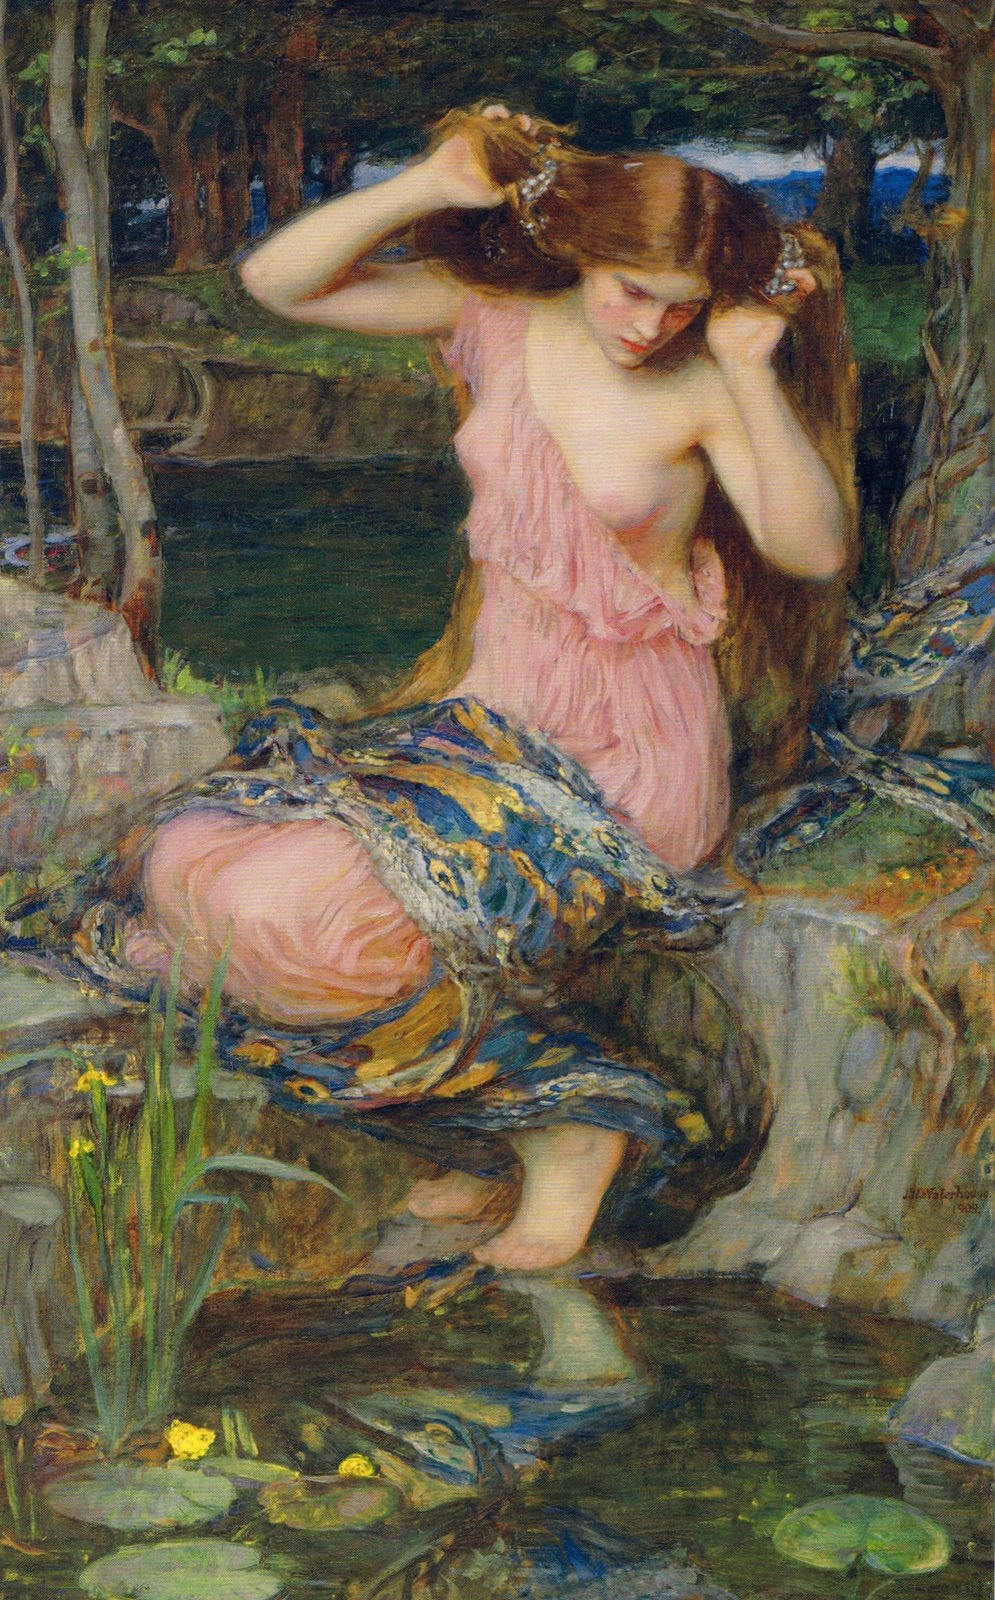 http://upload.wikimedia.org/wikipedia/commons/4/48/Lamia_Waterhouse.jpg